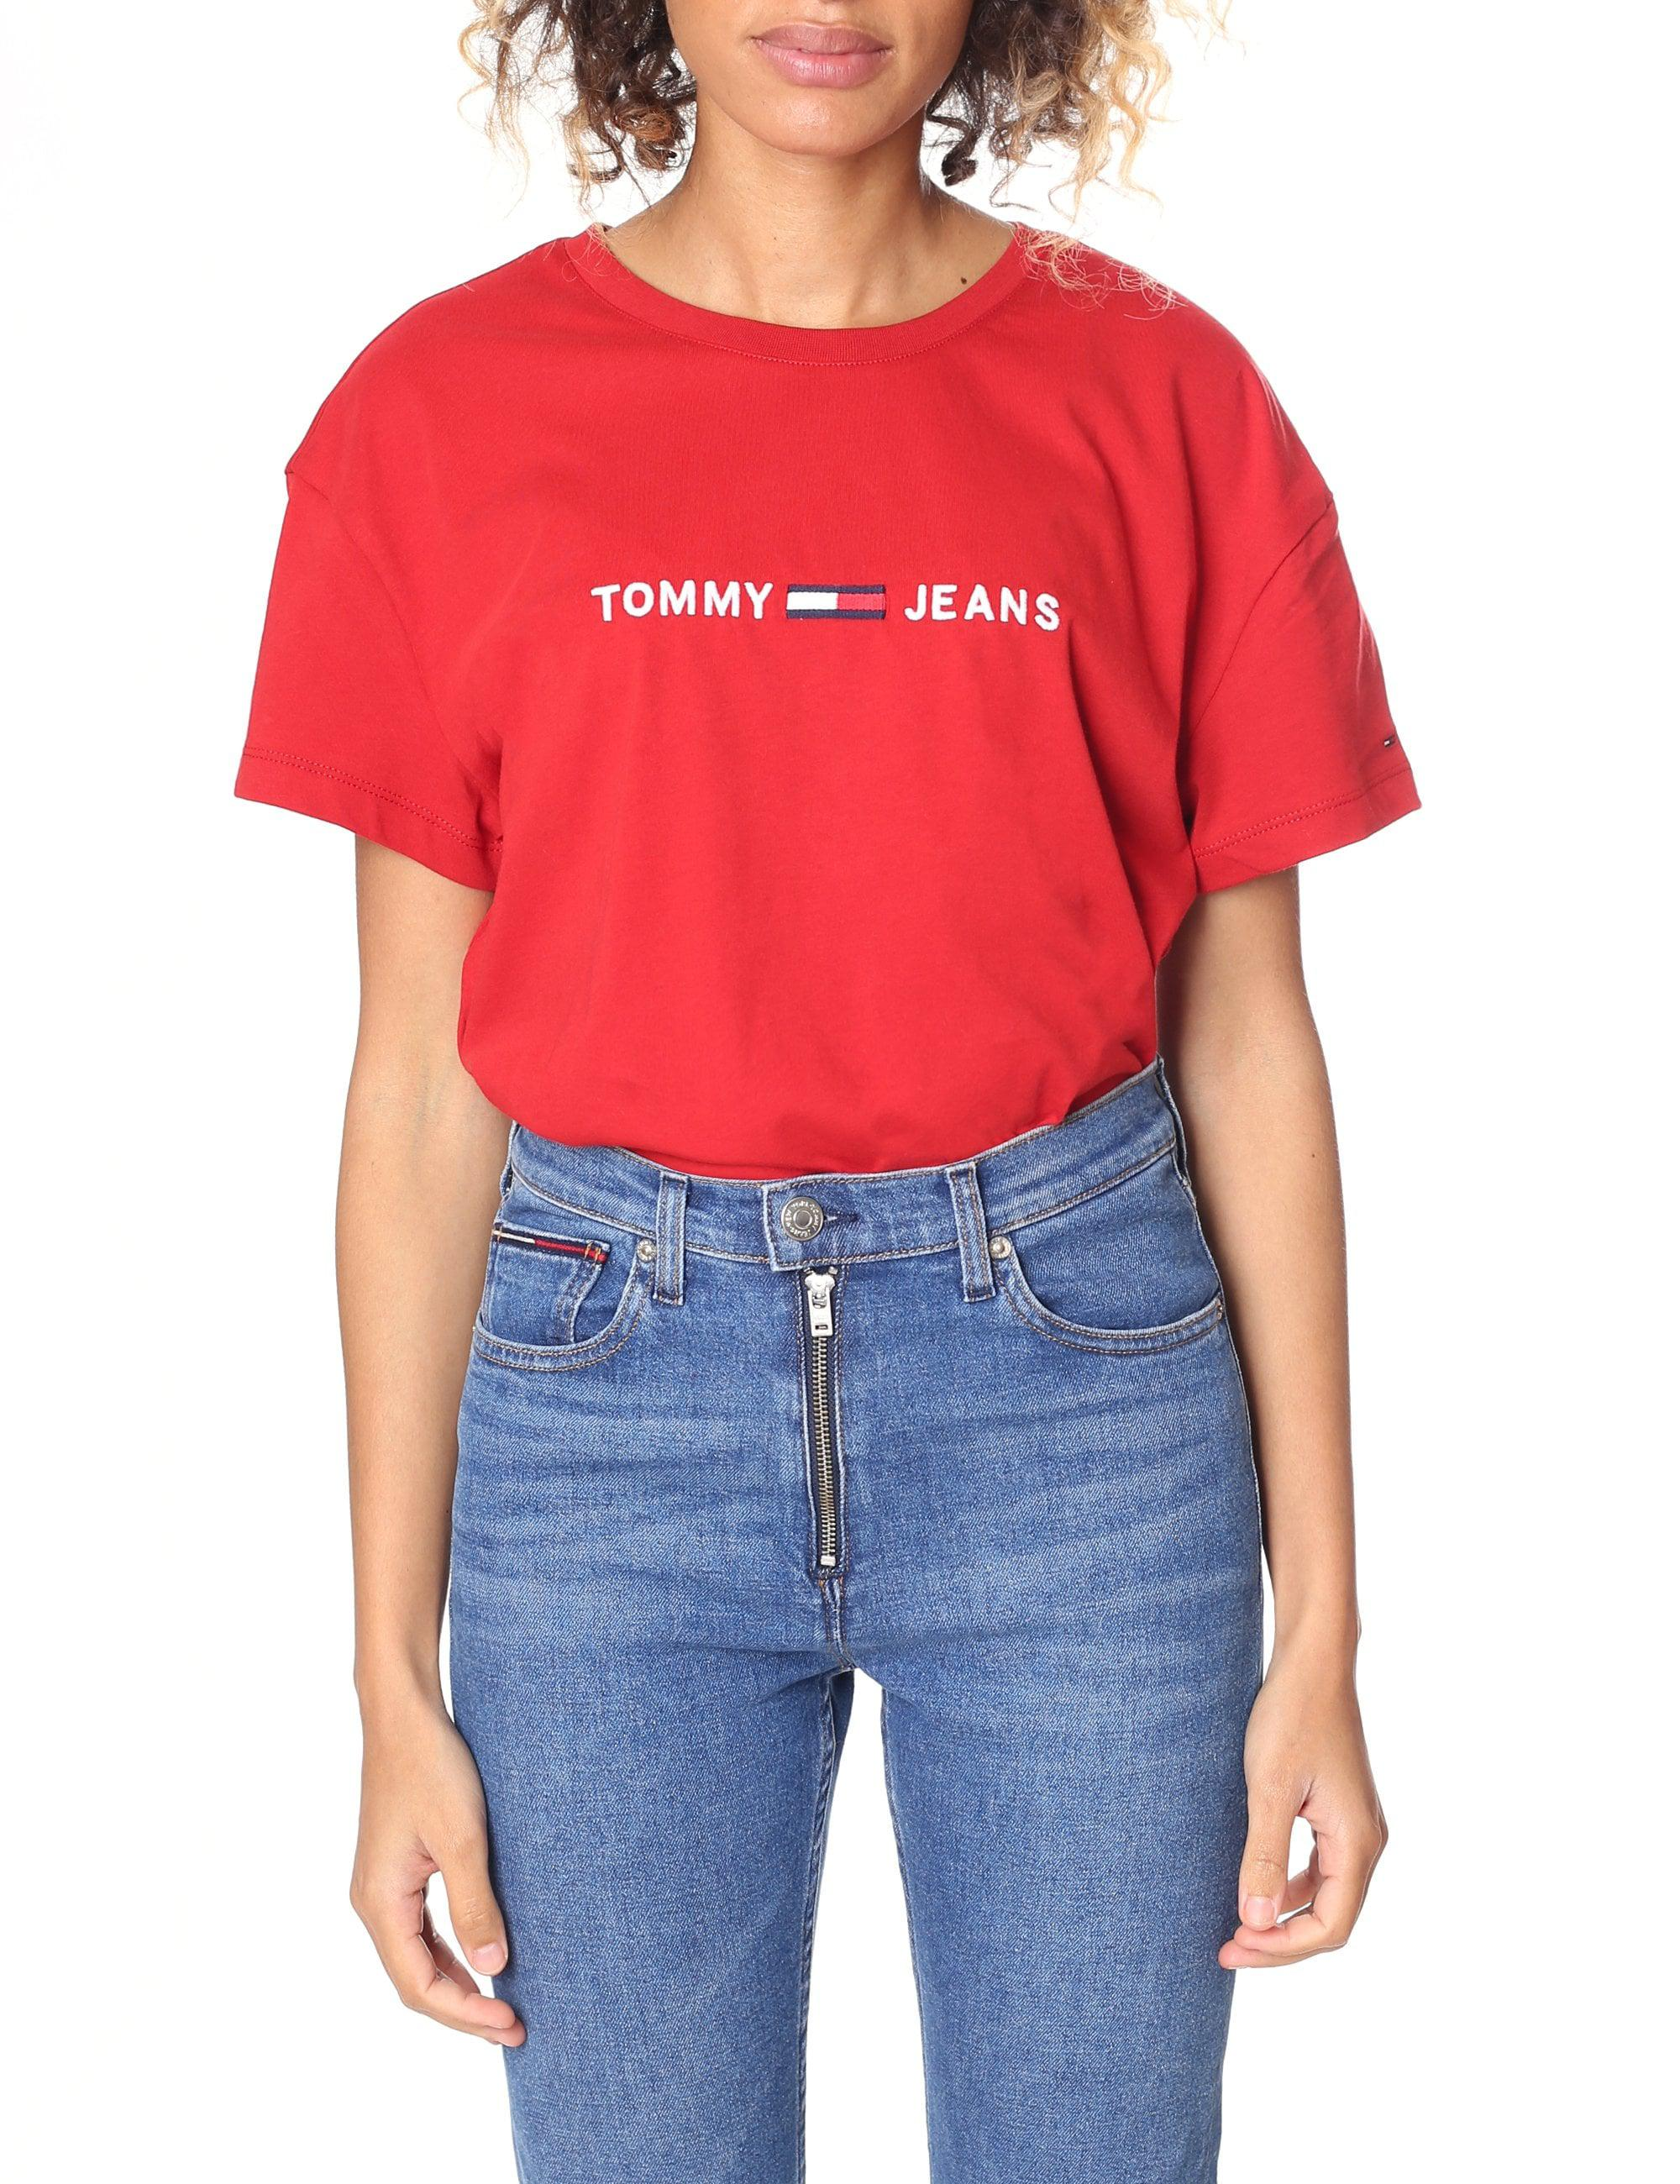 2ded3760 Tommy Jeans Clean Red Logo T Shirt - raveitsafe